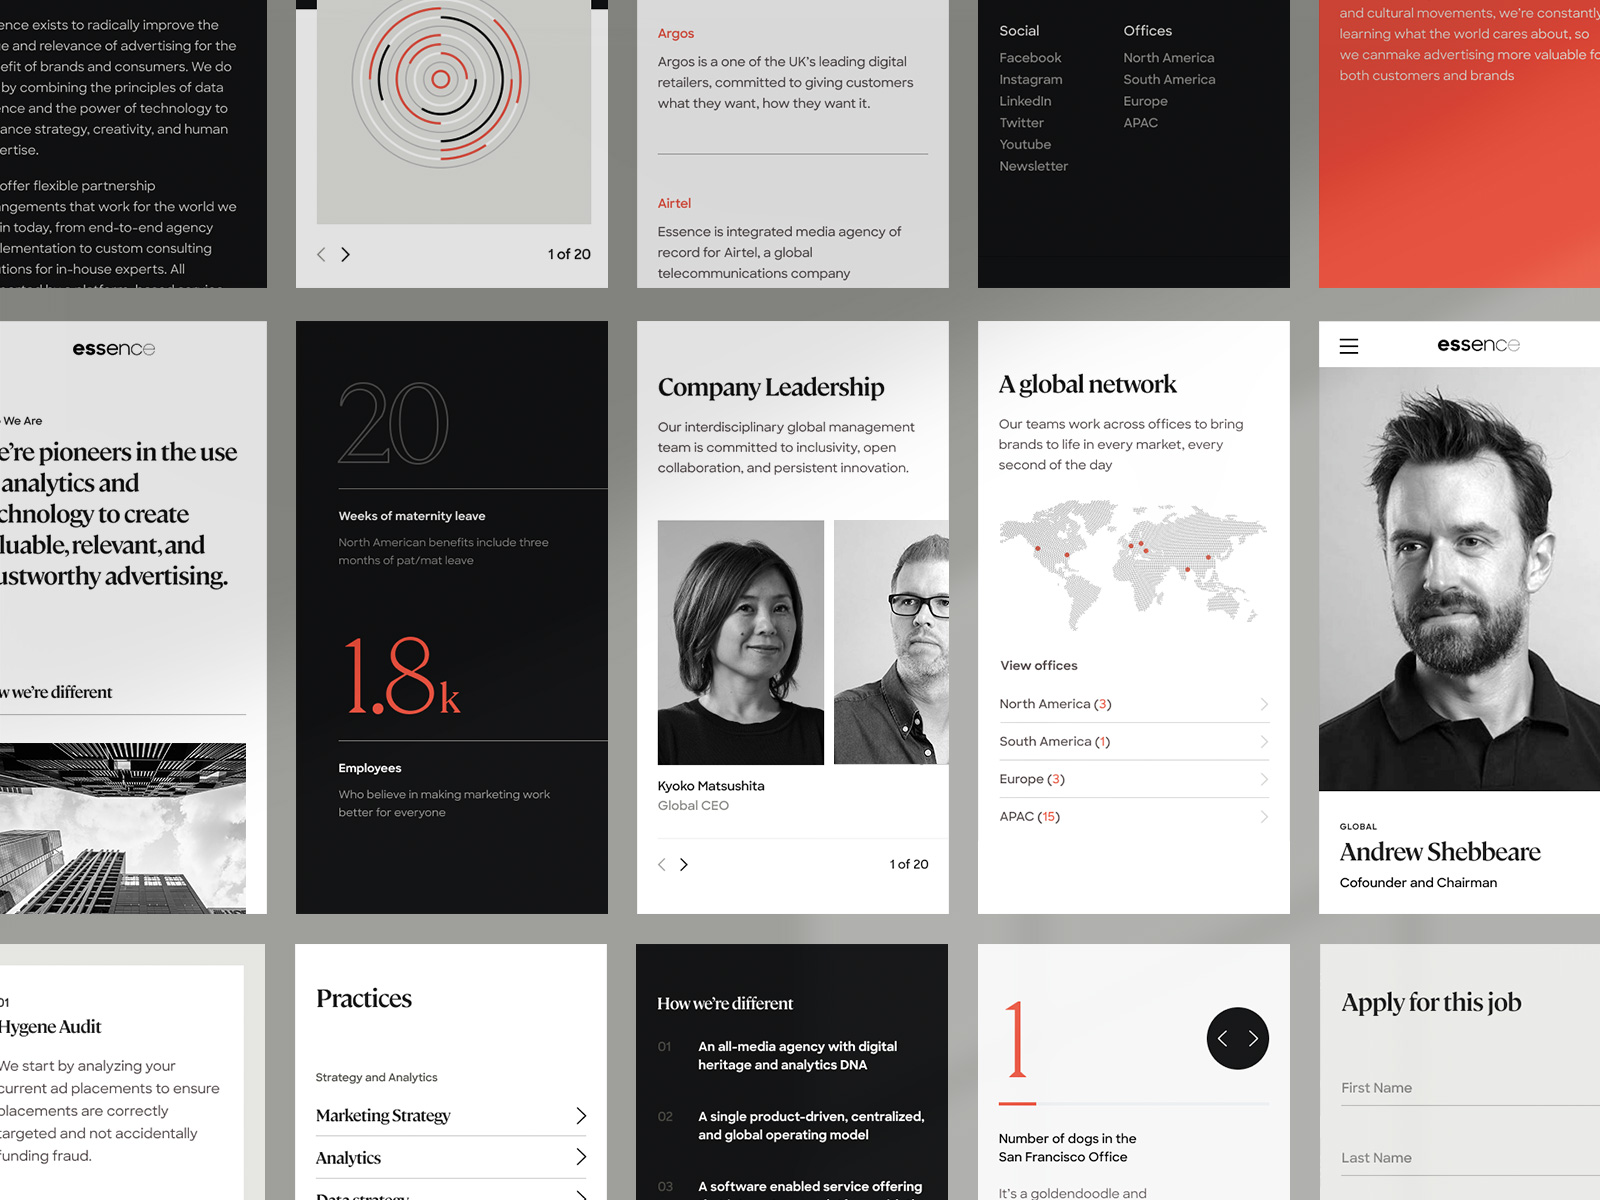 New Logo and Identity for Essence by Ueno